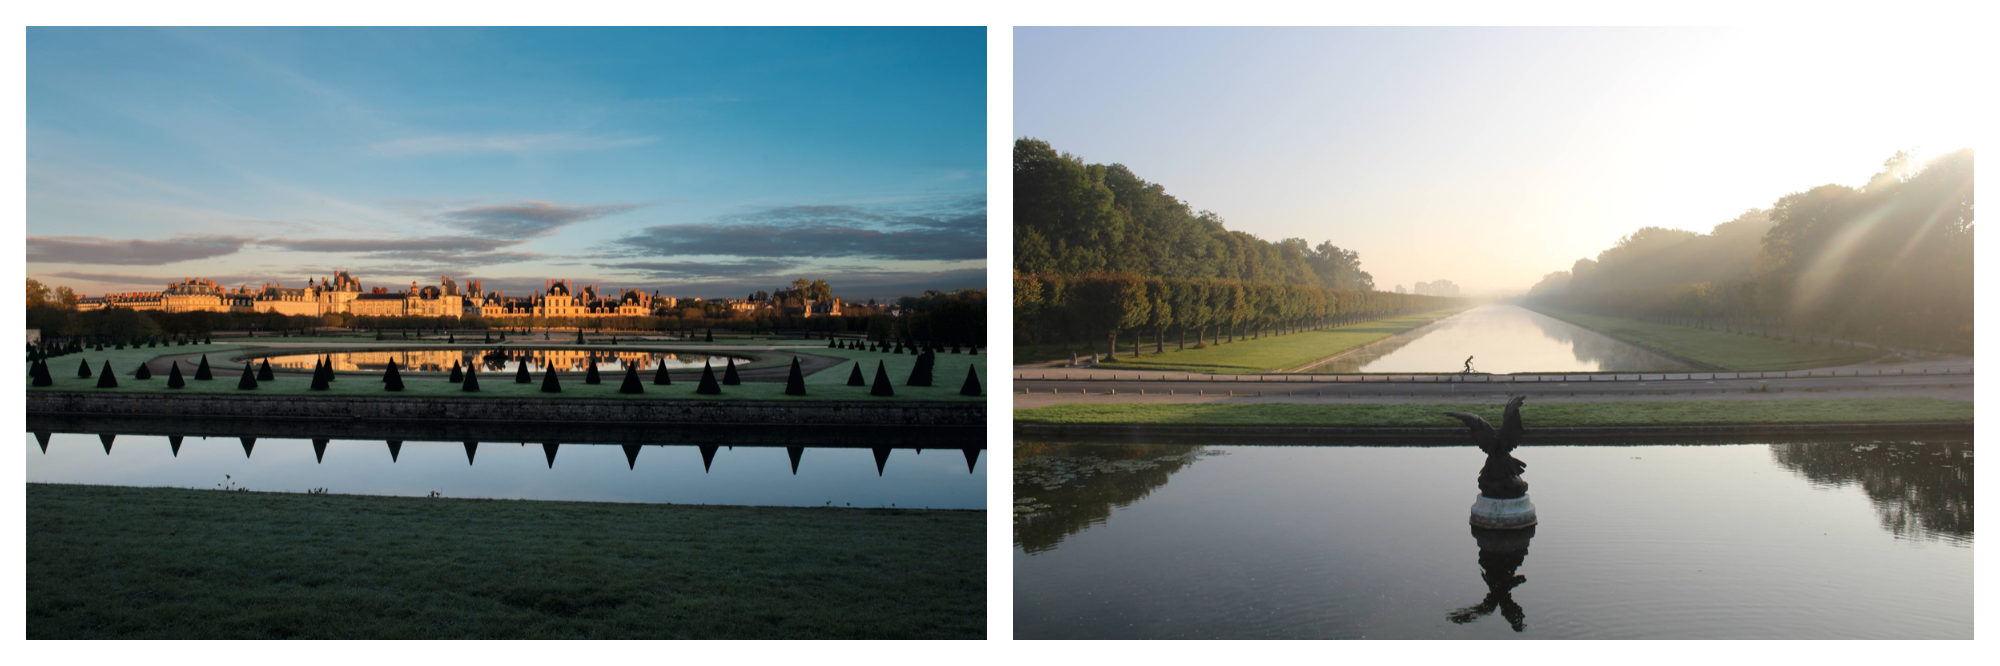 Château de Fontainebleau at sunset with the reflection of the manicured trees in the water (left). The fountain at Château de Fontainebleau in the daytime (right).